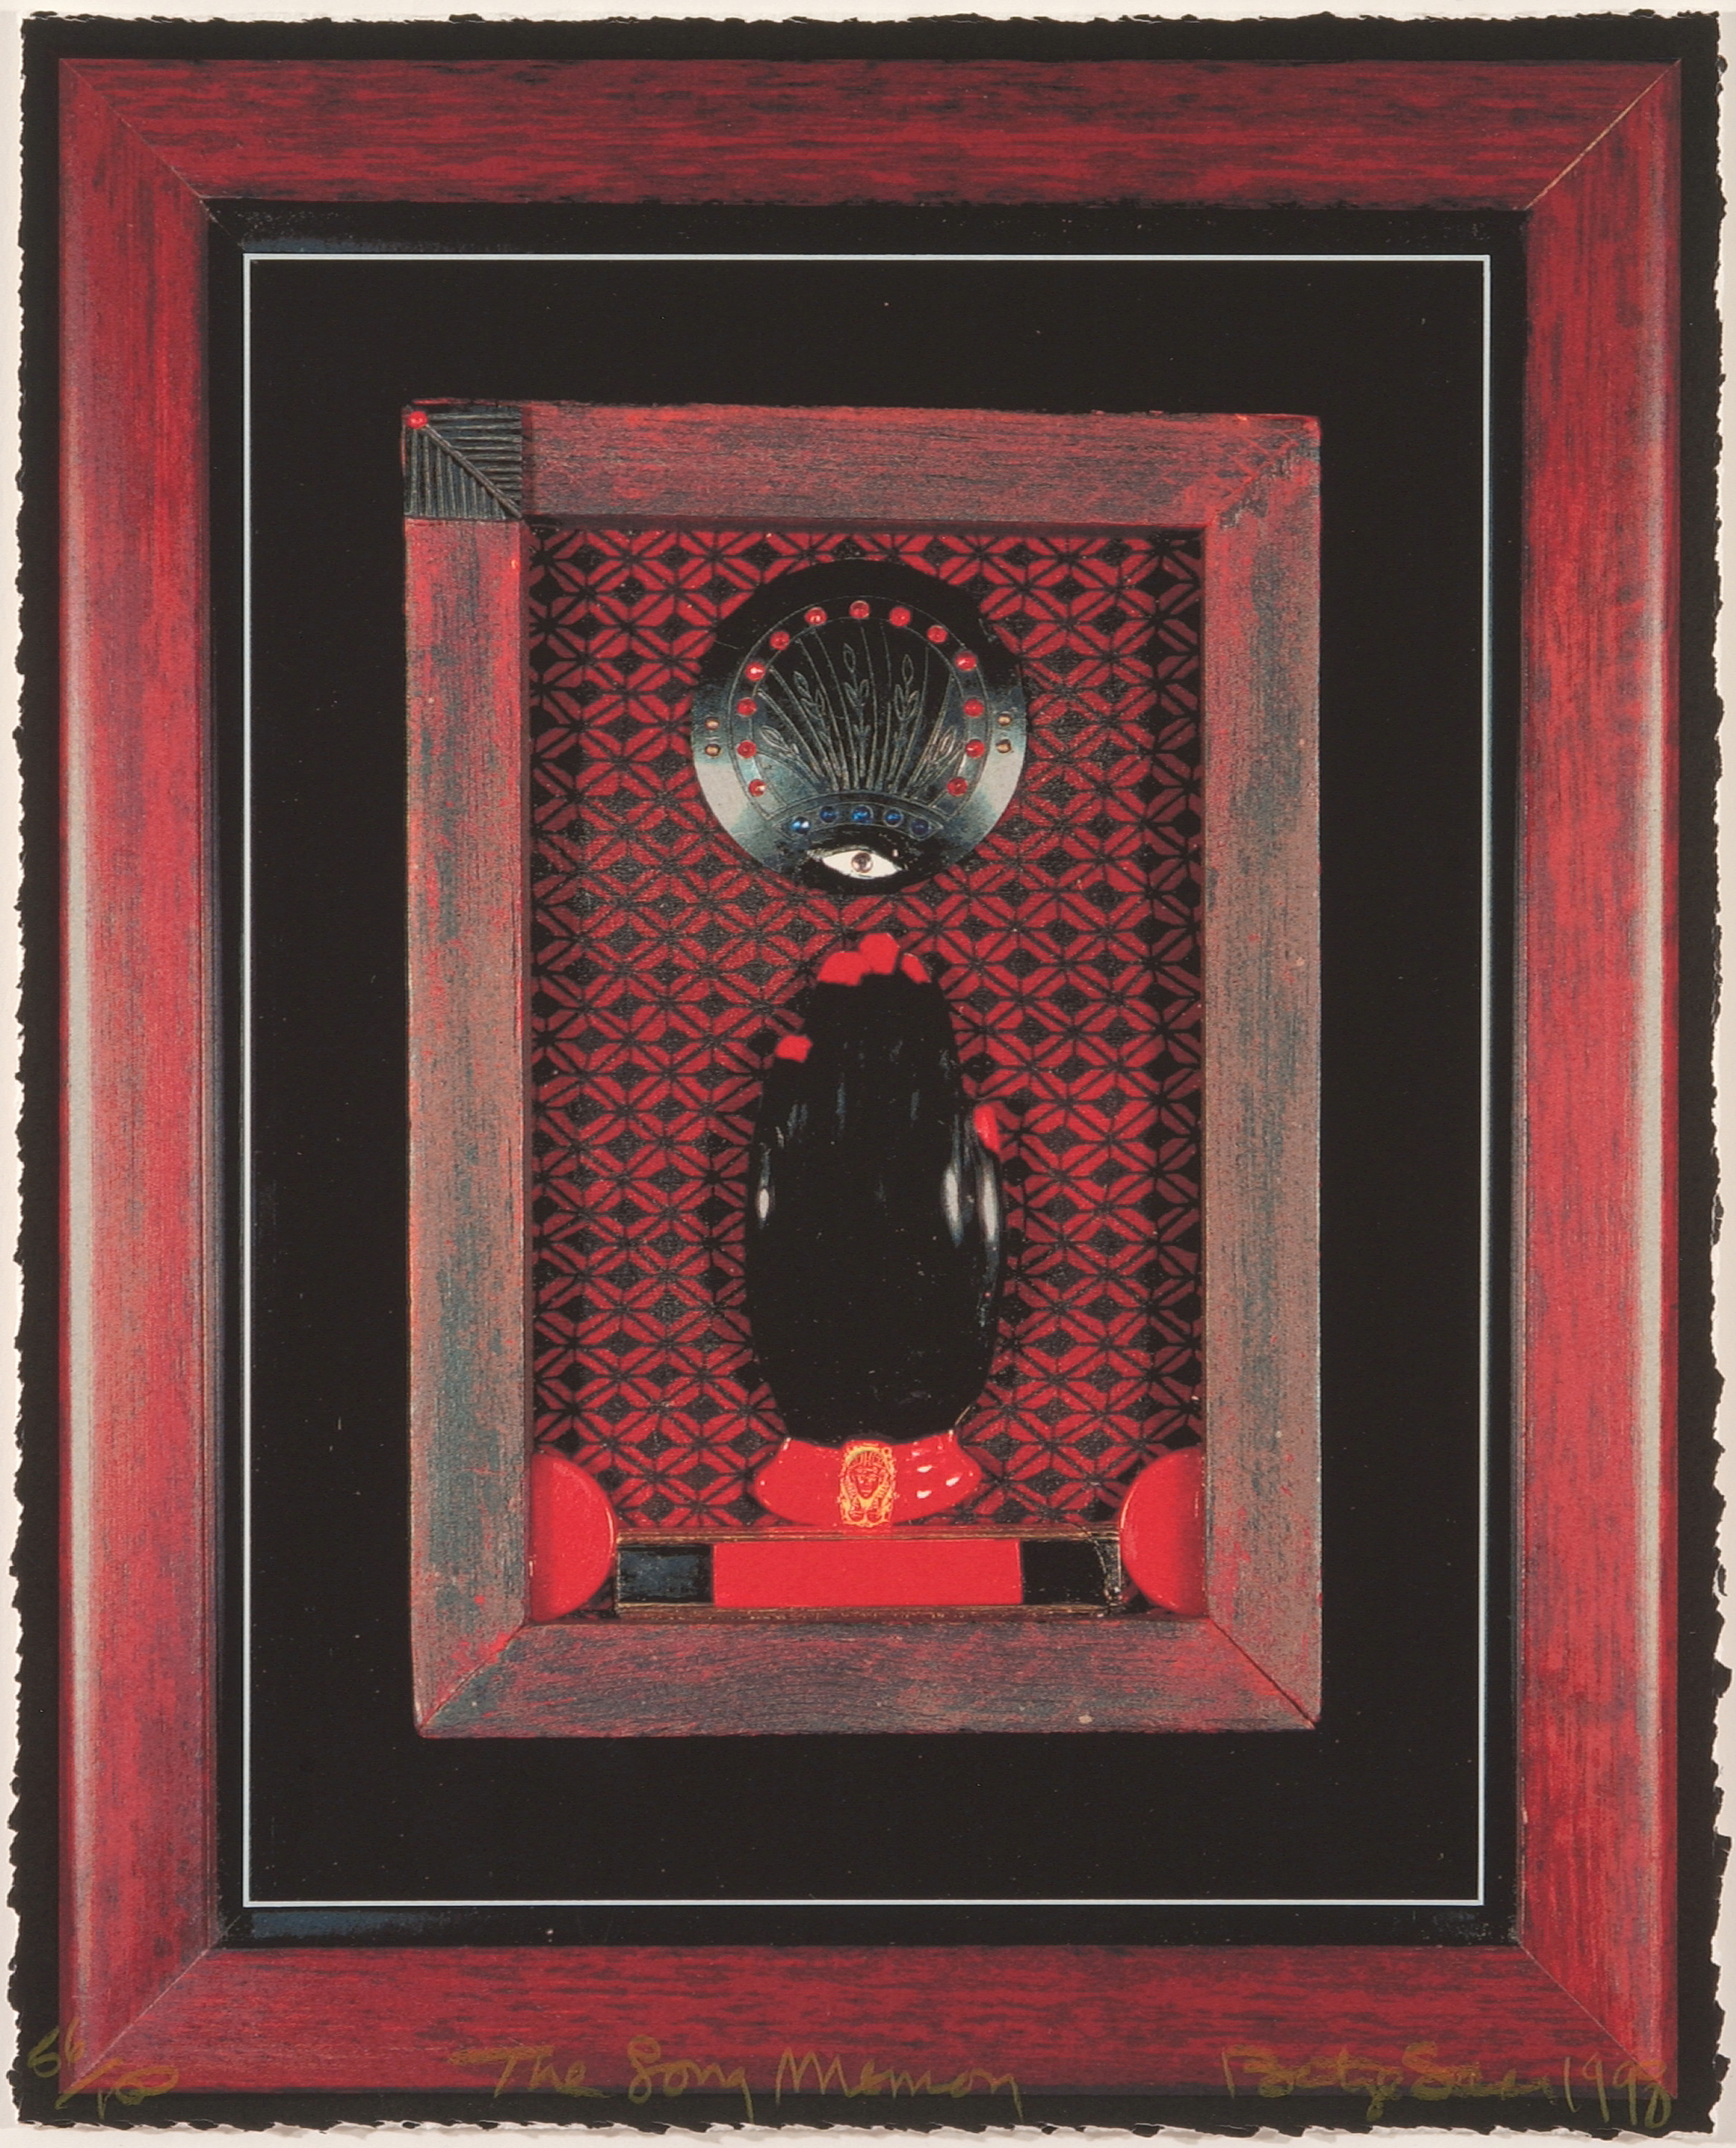 A black left hand with bright red nails and a red bracelet in a red wooden frame. It sits atop a black and red patterned background, fingers pointing toward a black medallion with an eye and other details. The red frame is surrounded by black and sits within a larger red frame.